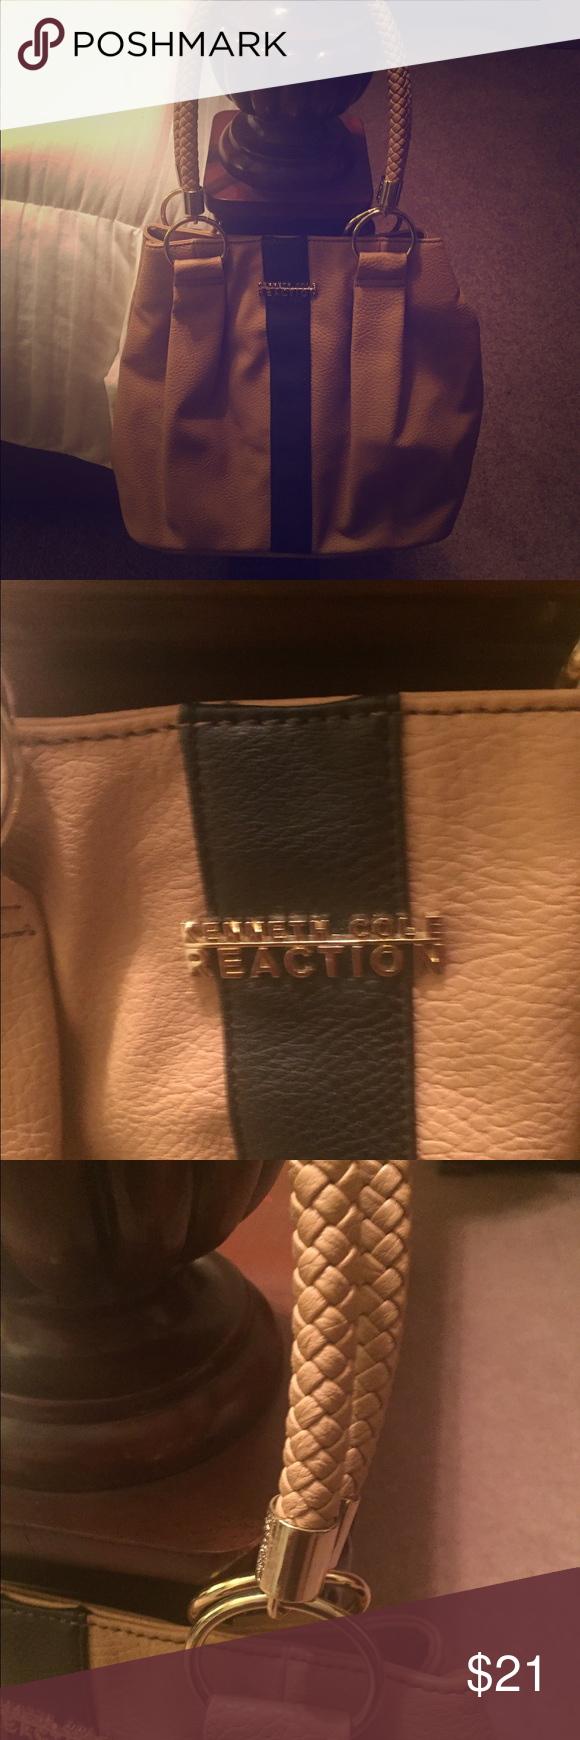 Kenneth Cole Purse!! Cute tan Purse with black strip down the middle and gold accents! Braiding on handles. Only worn once! Make an offer! Kenneth Cole Reaction Bags Satchels